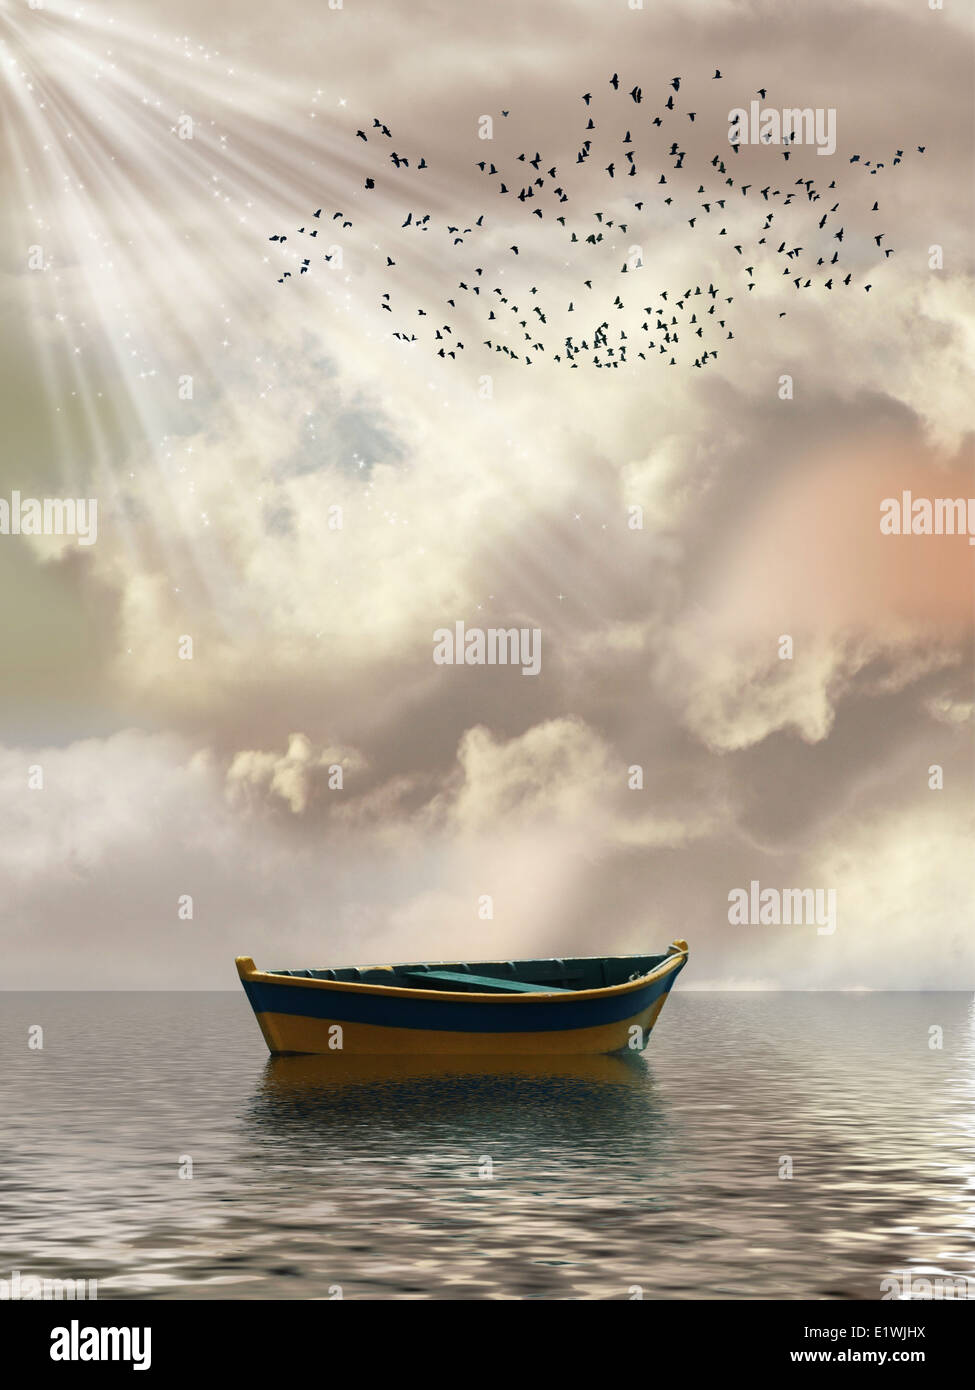 Fantasy Landscape in the ocean with boat and birds - Stock Image